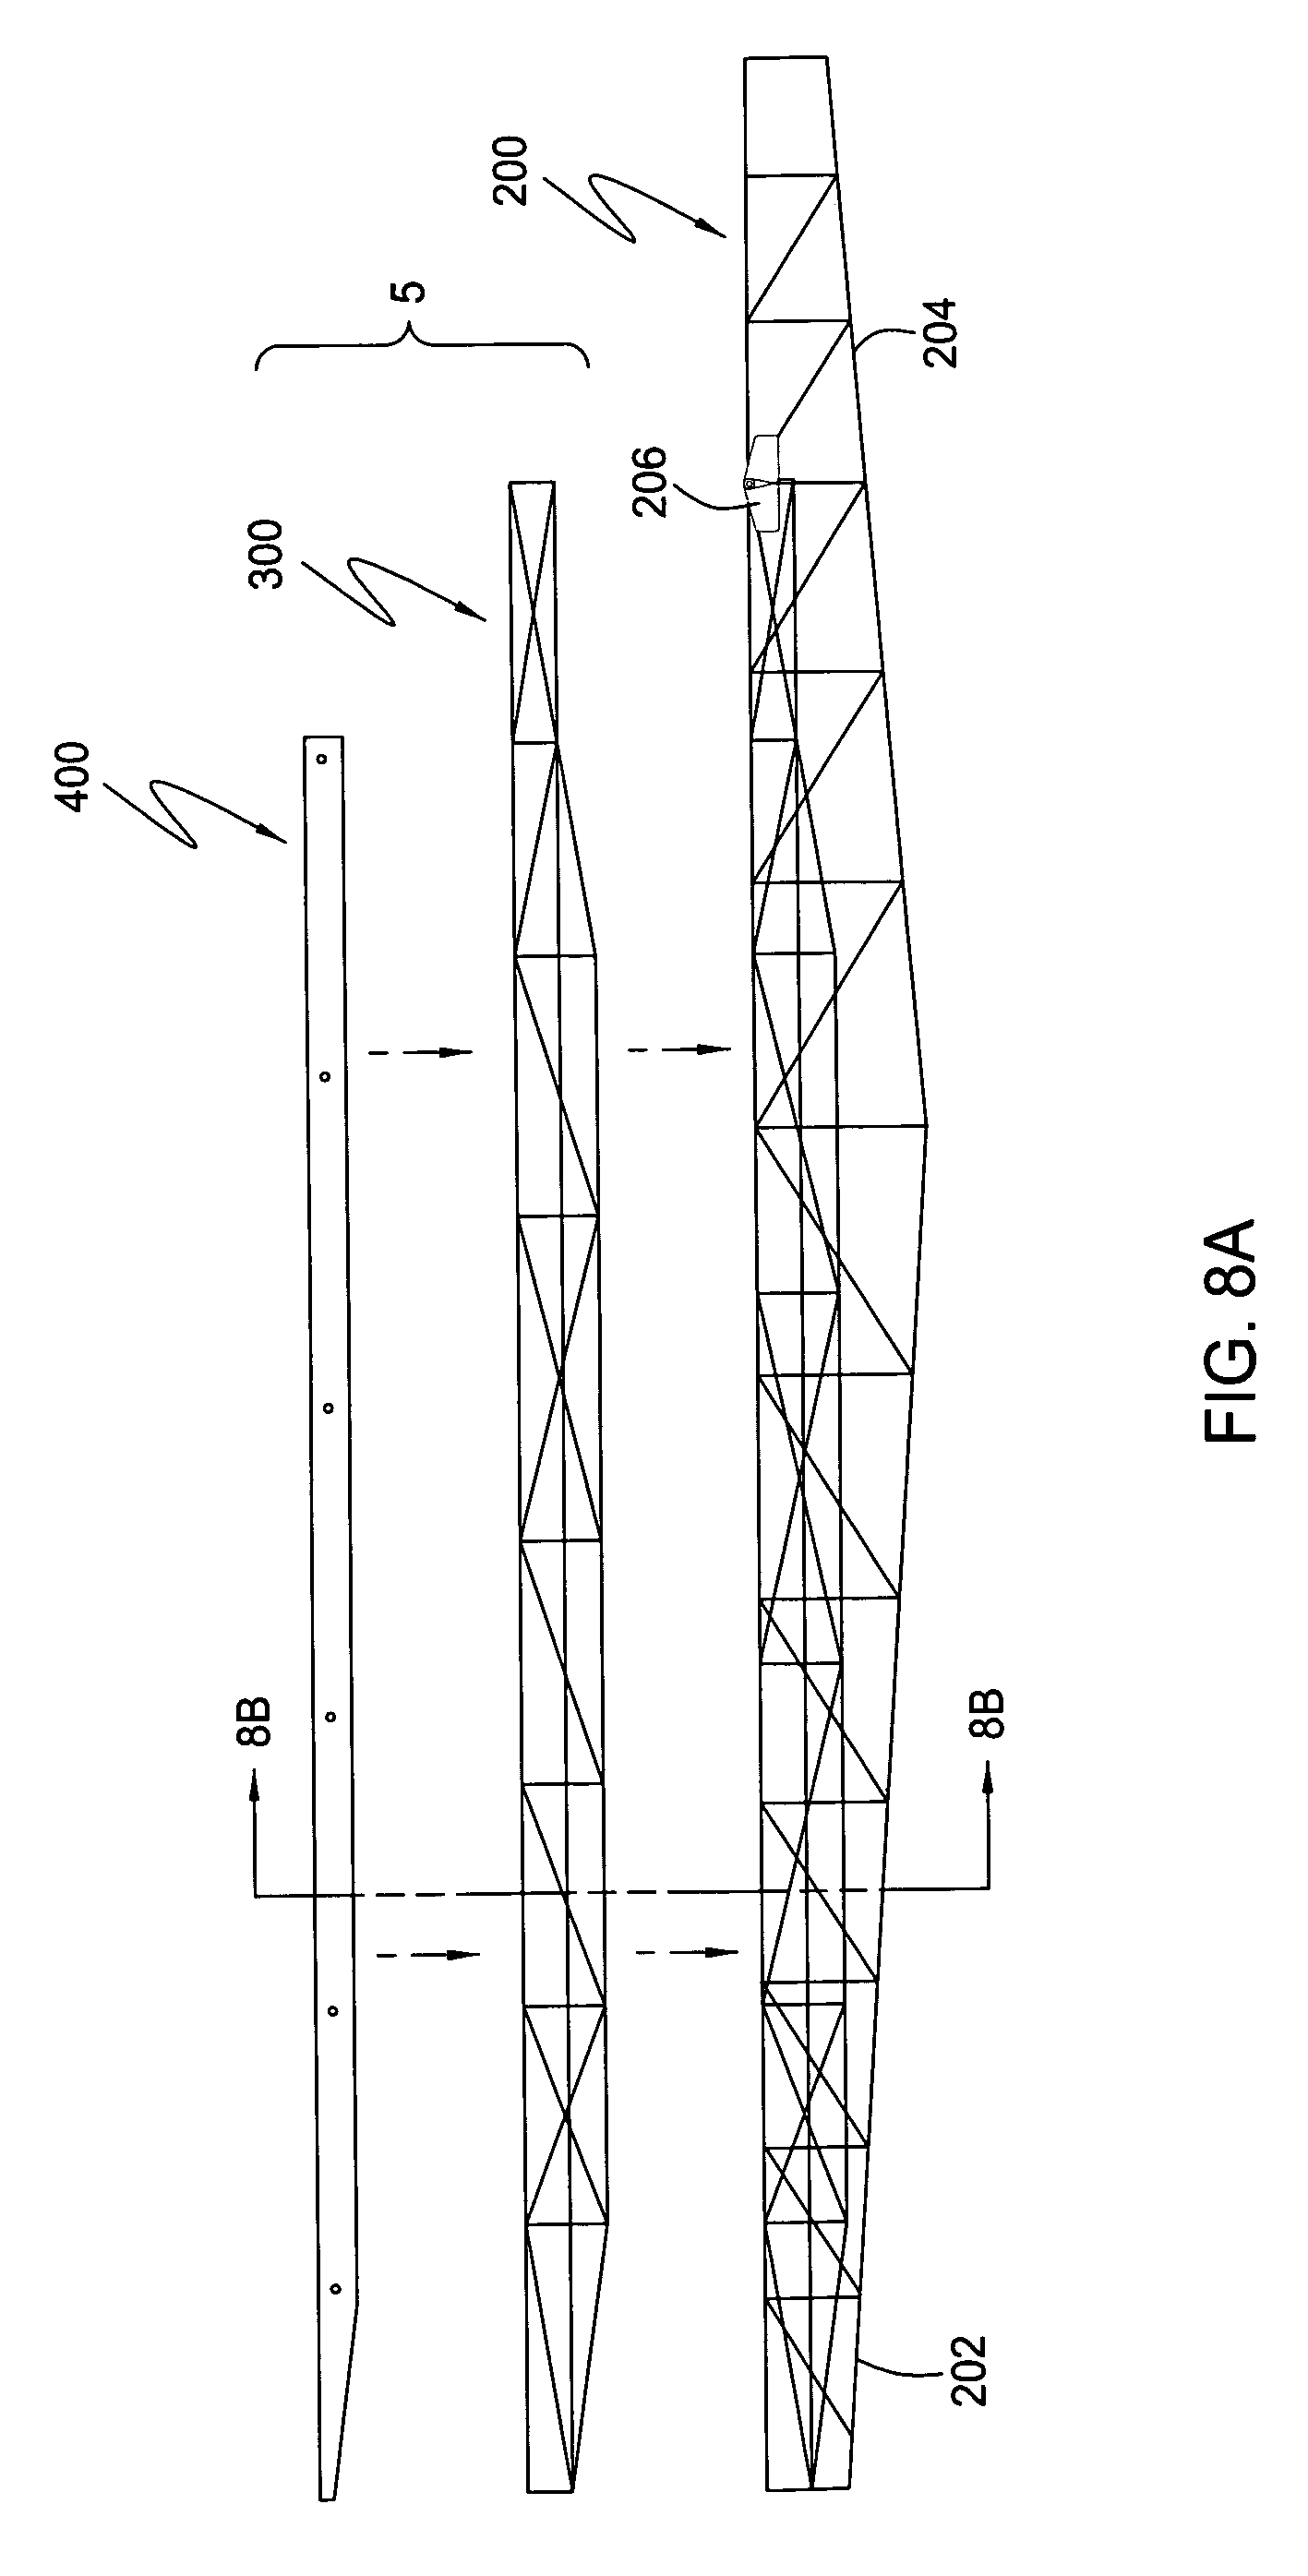 Rig Floor Elevation : Patent us pipe handling apparatus for pick up and